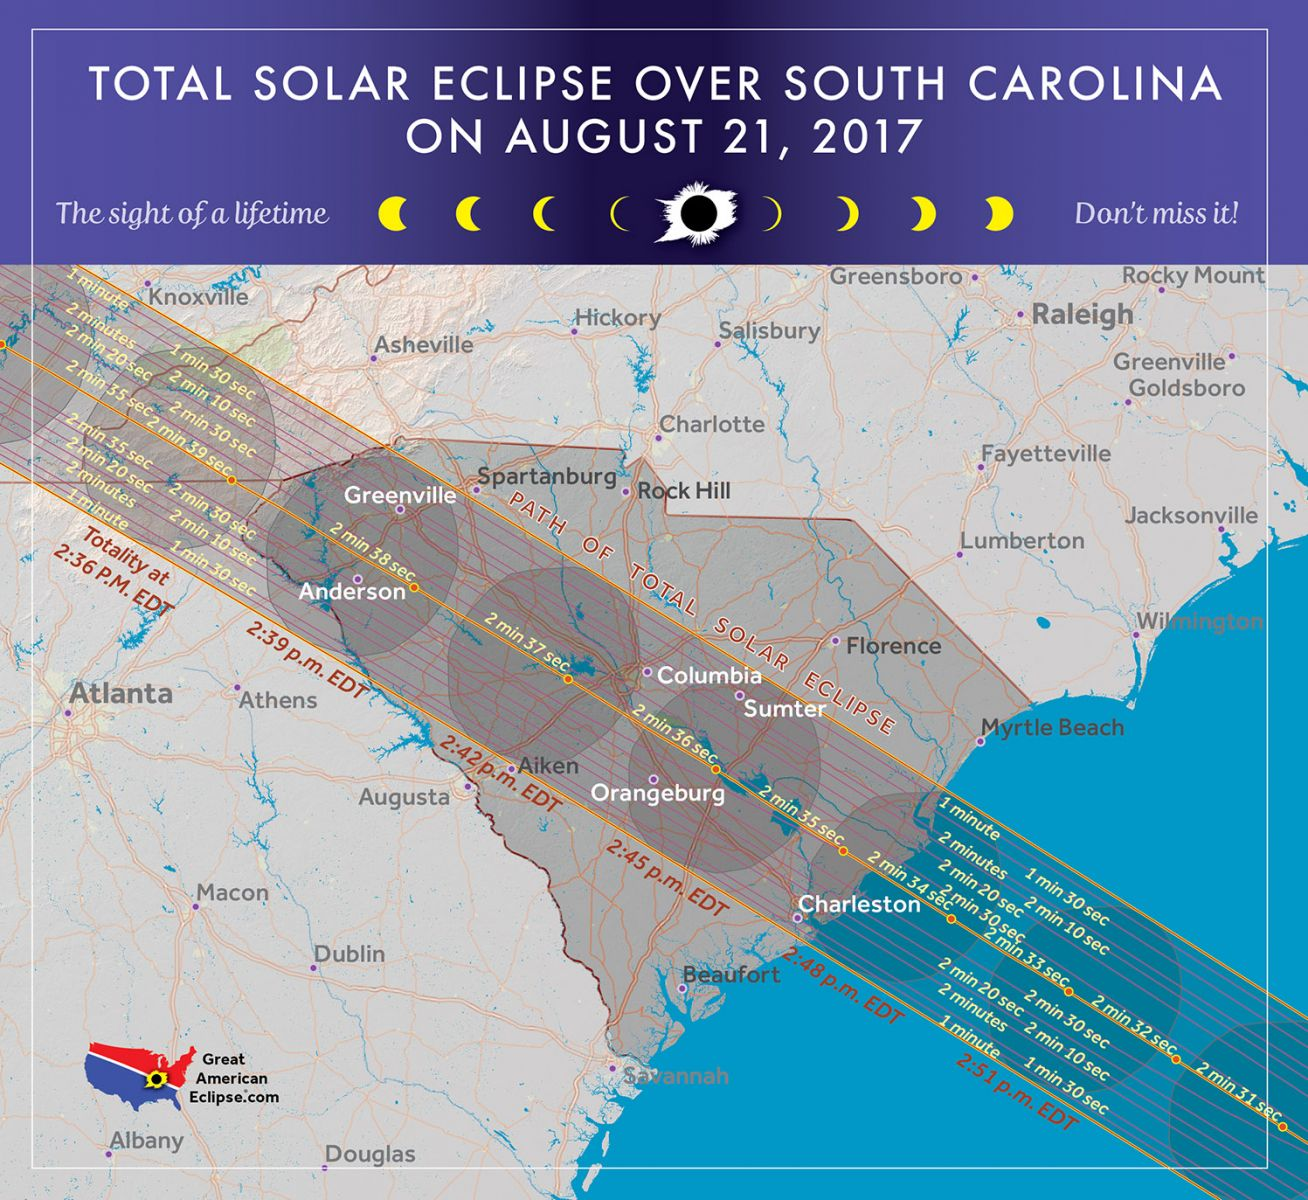 If weather permits, the entire United States will see a partial eclipse on Aug. 21 for two to three hours, according to NASA. But locations within a 60- to 70-mile-wide path stretching from Oregon to South Carolina will see a total eclipse for a few minutes. (Map/Michael Zeiler, GreatAmericanEclipse.com)